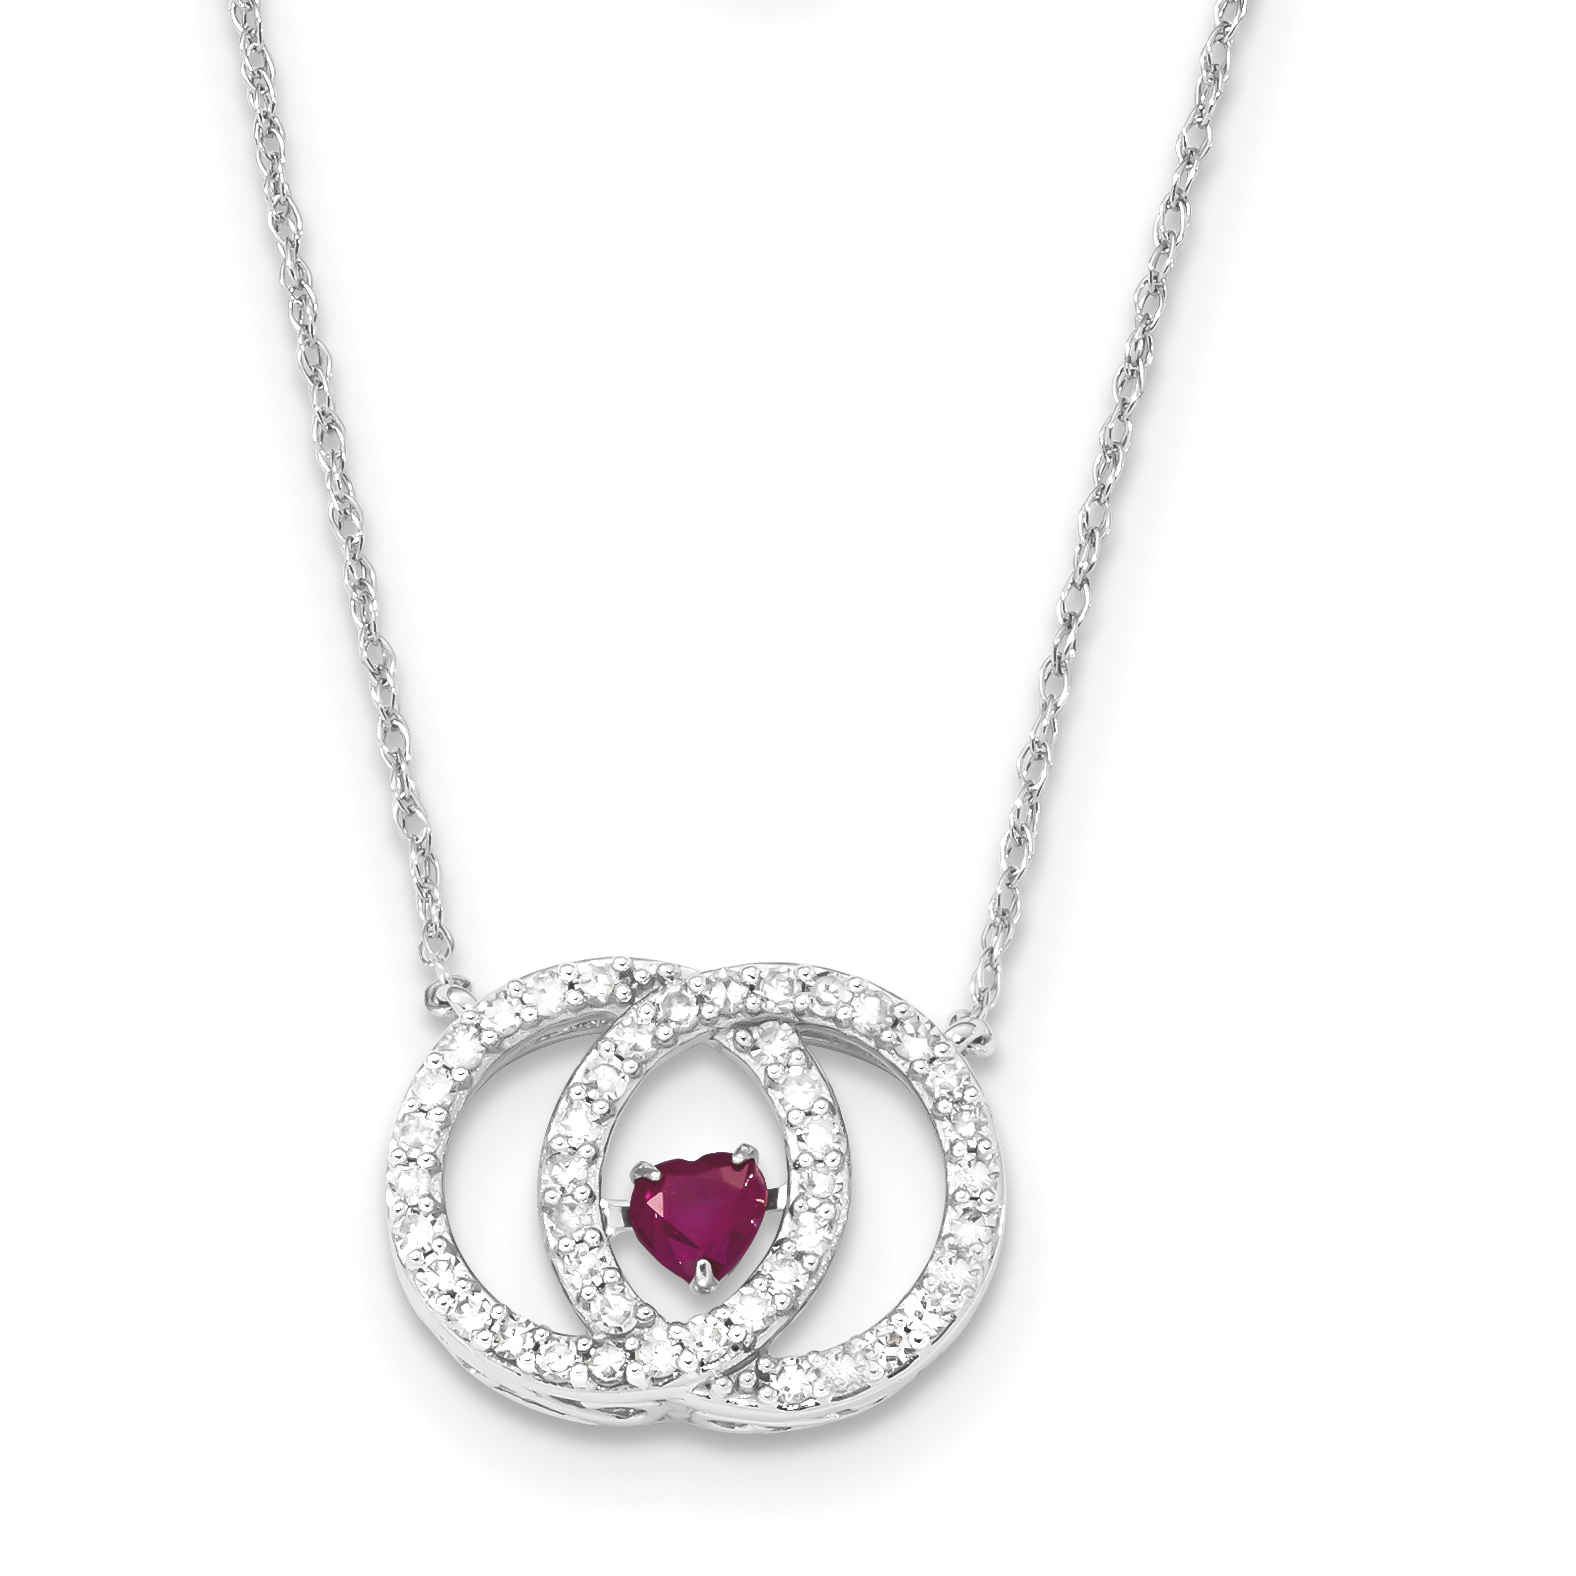 14k White Gold White Diamond & Vibrant Ruby Necklace by